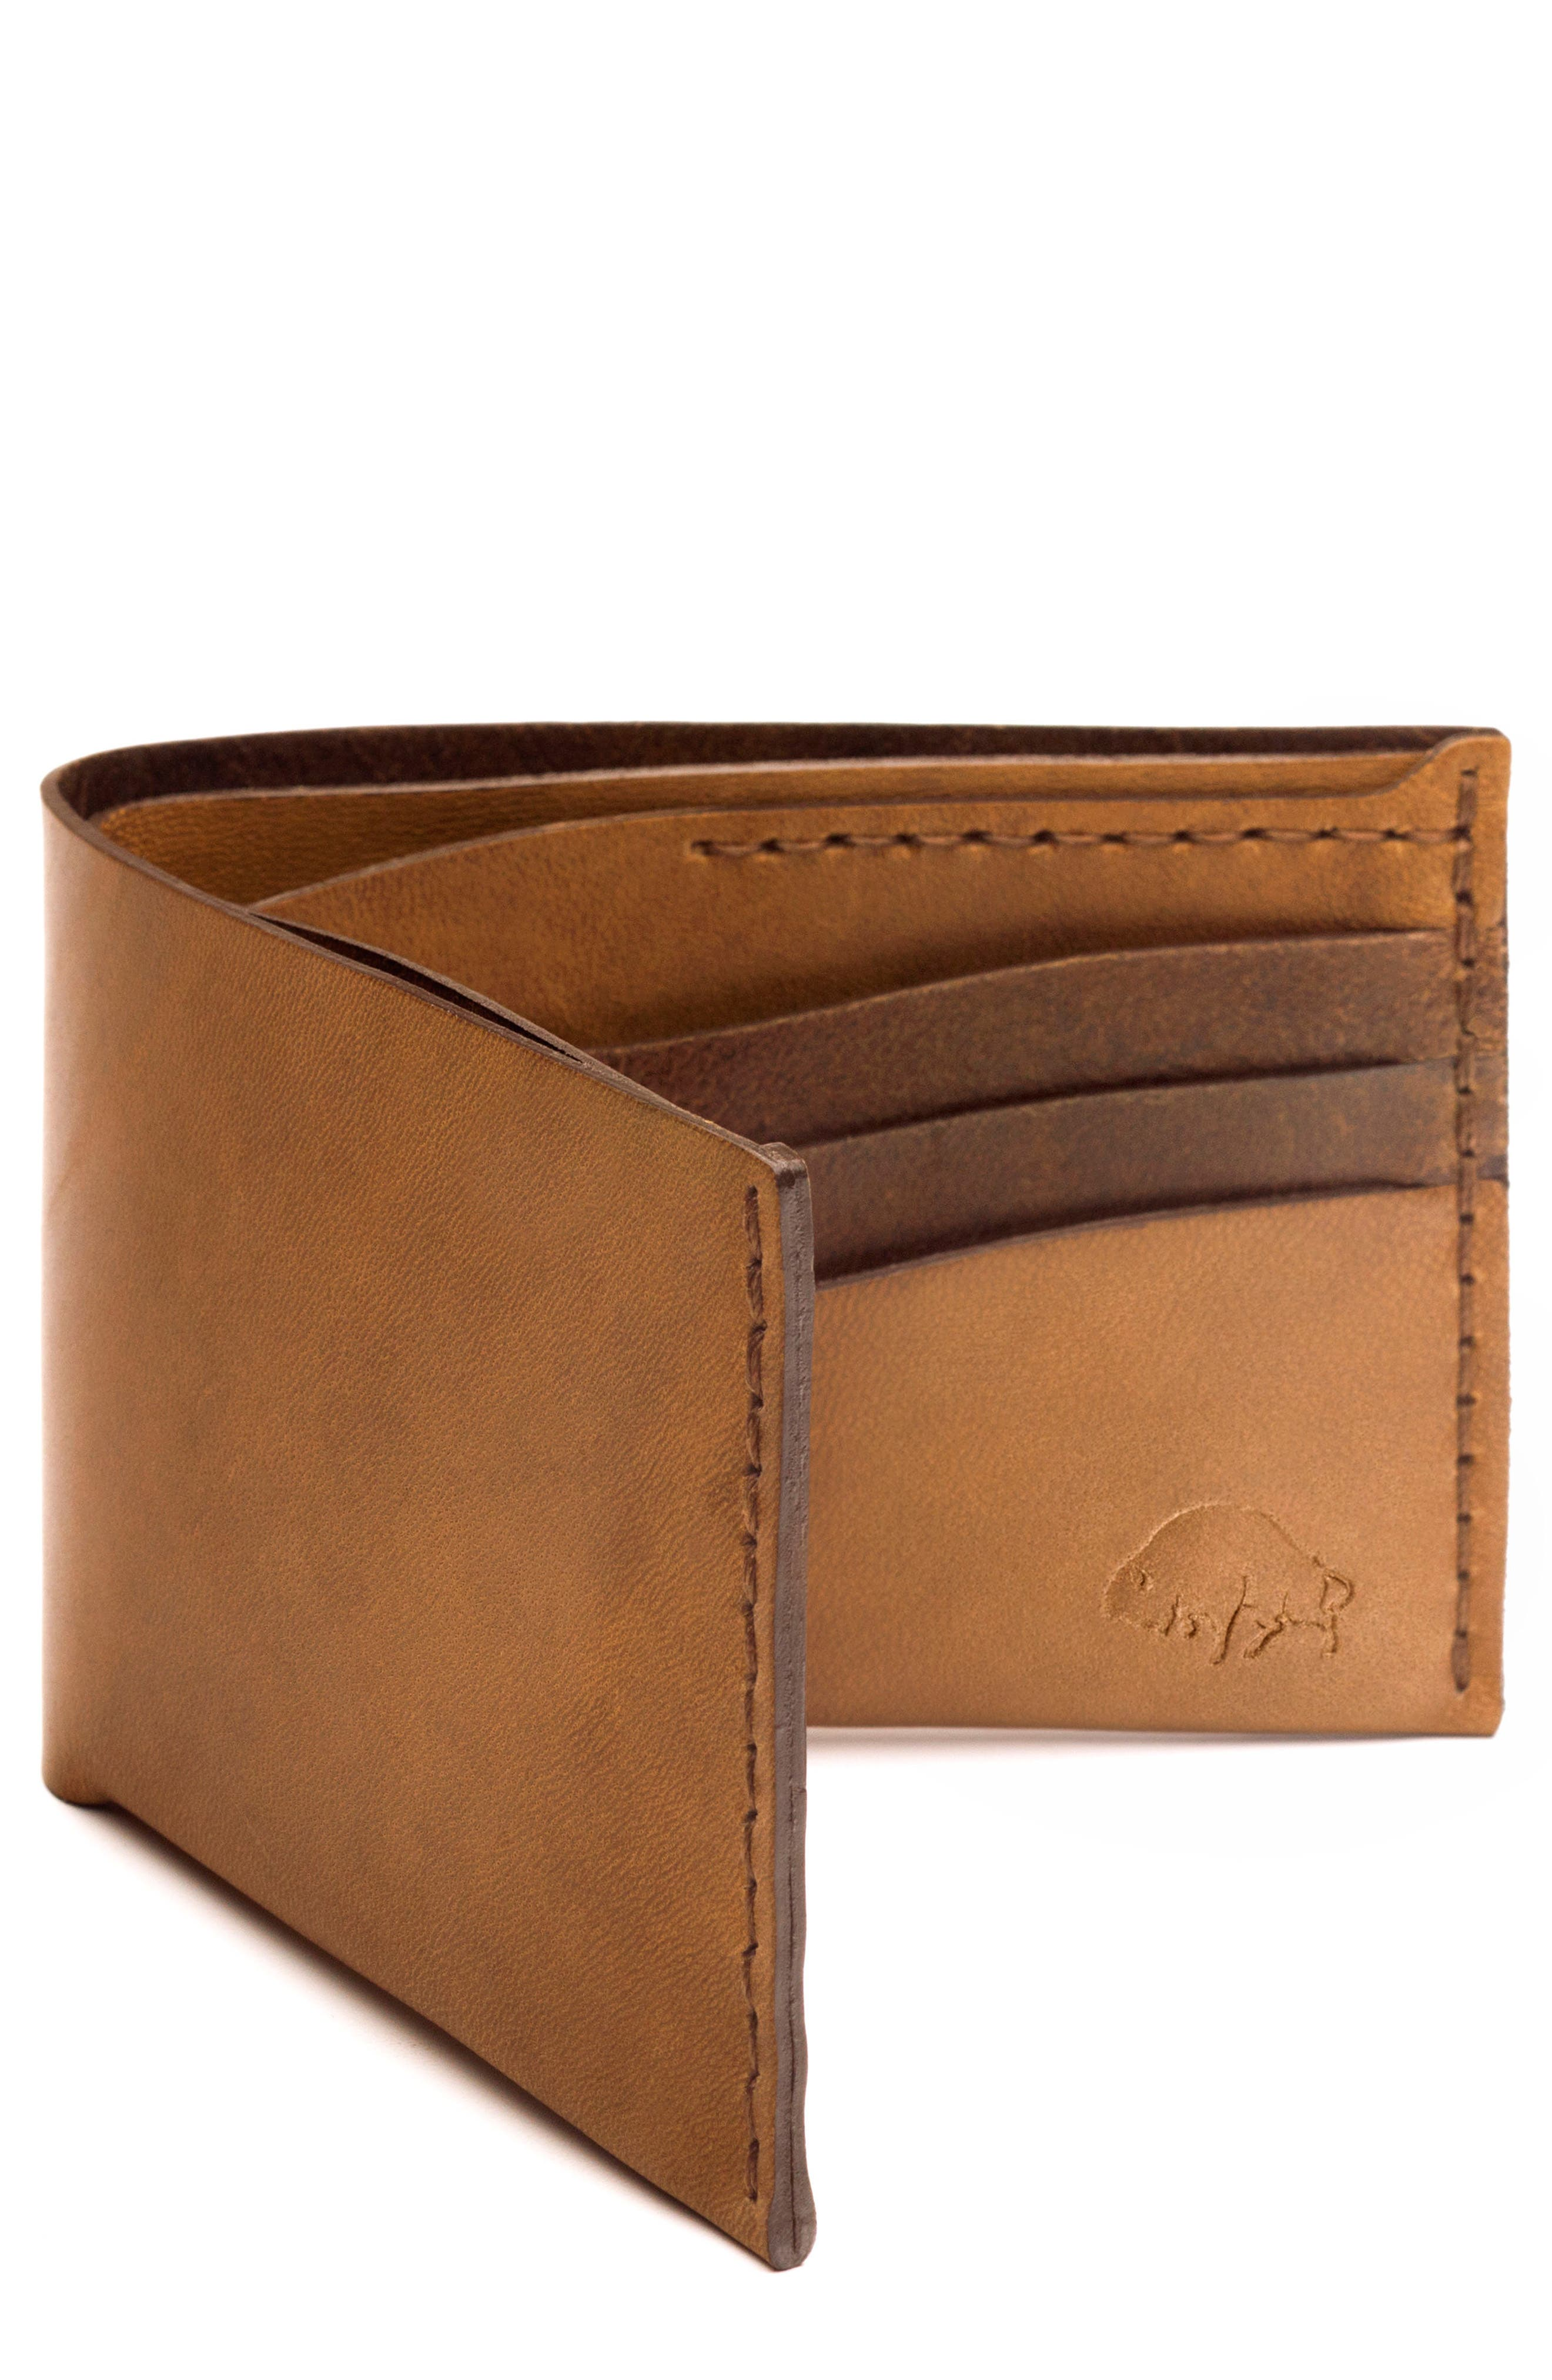 No. 8 Leather Wallet,                         Main,                         color, WHISKEY